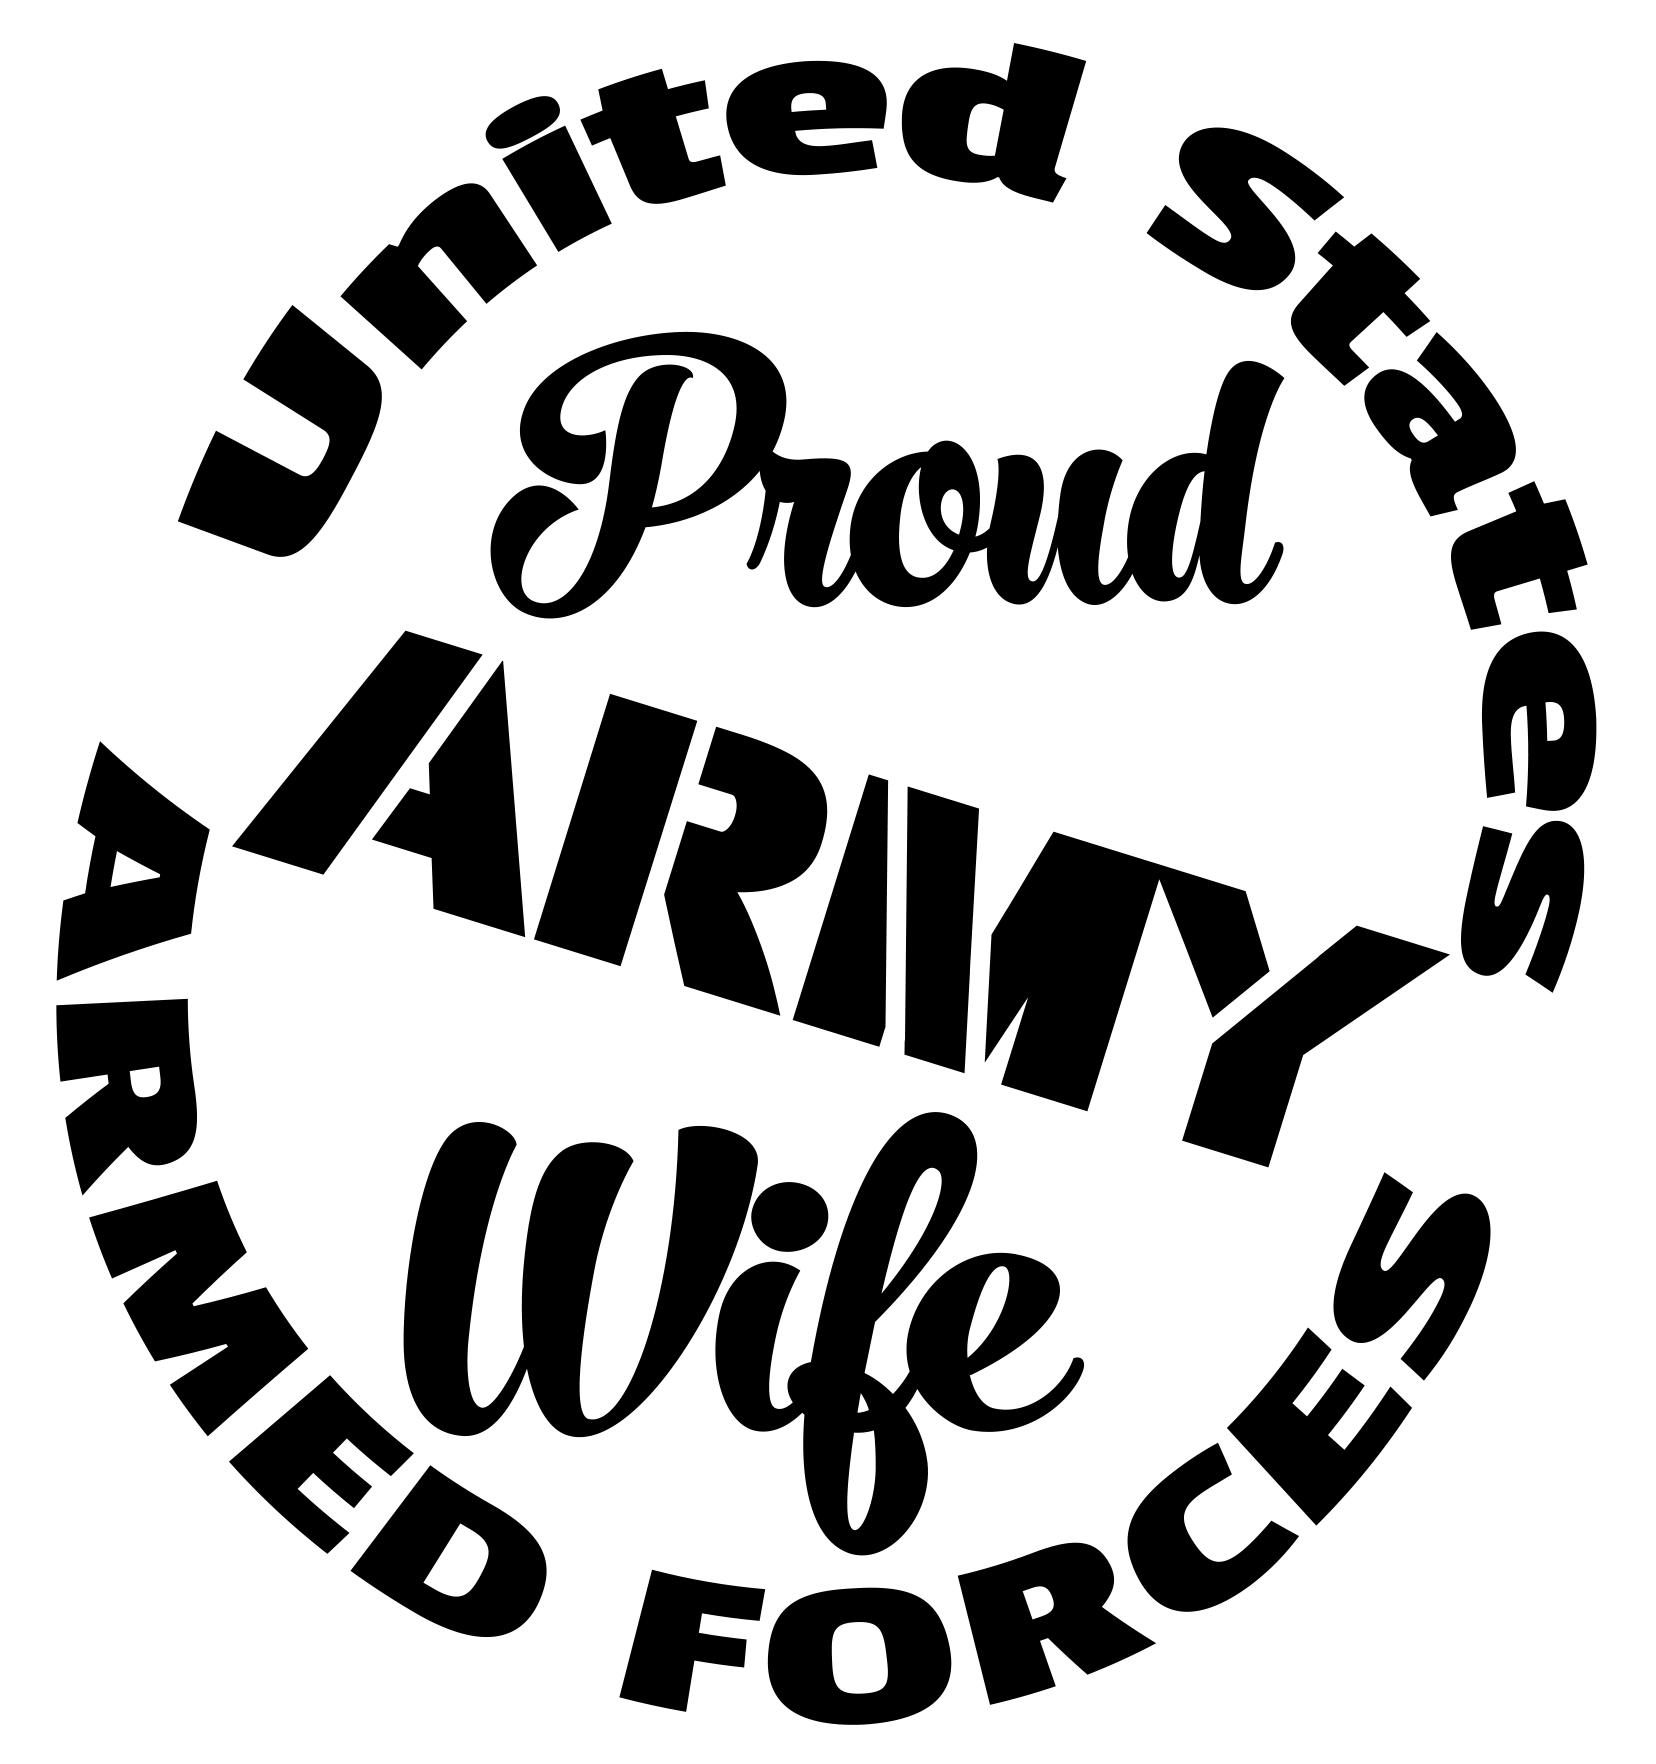 Free Proud Army Wife SVG Cutting File